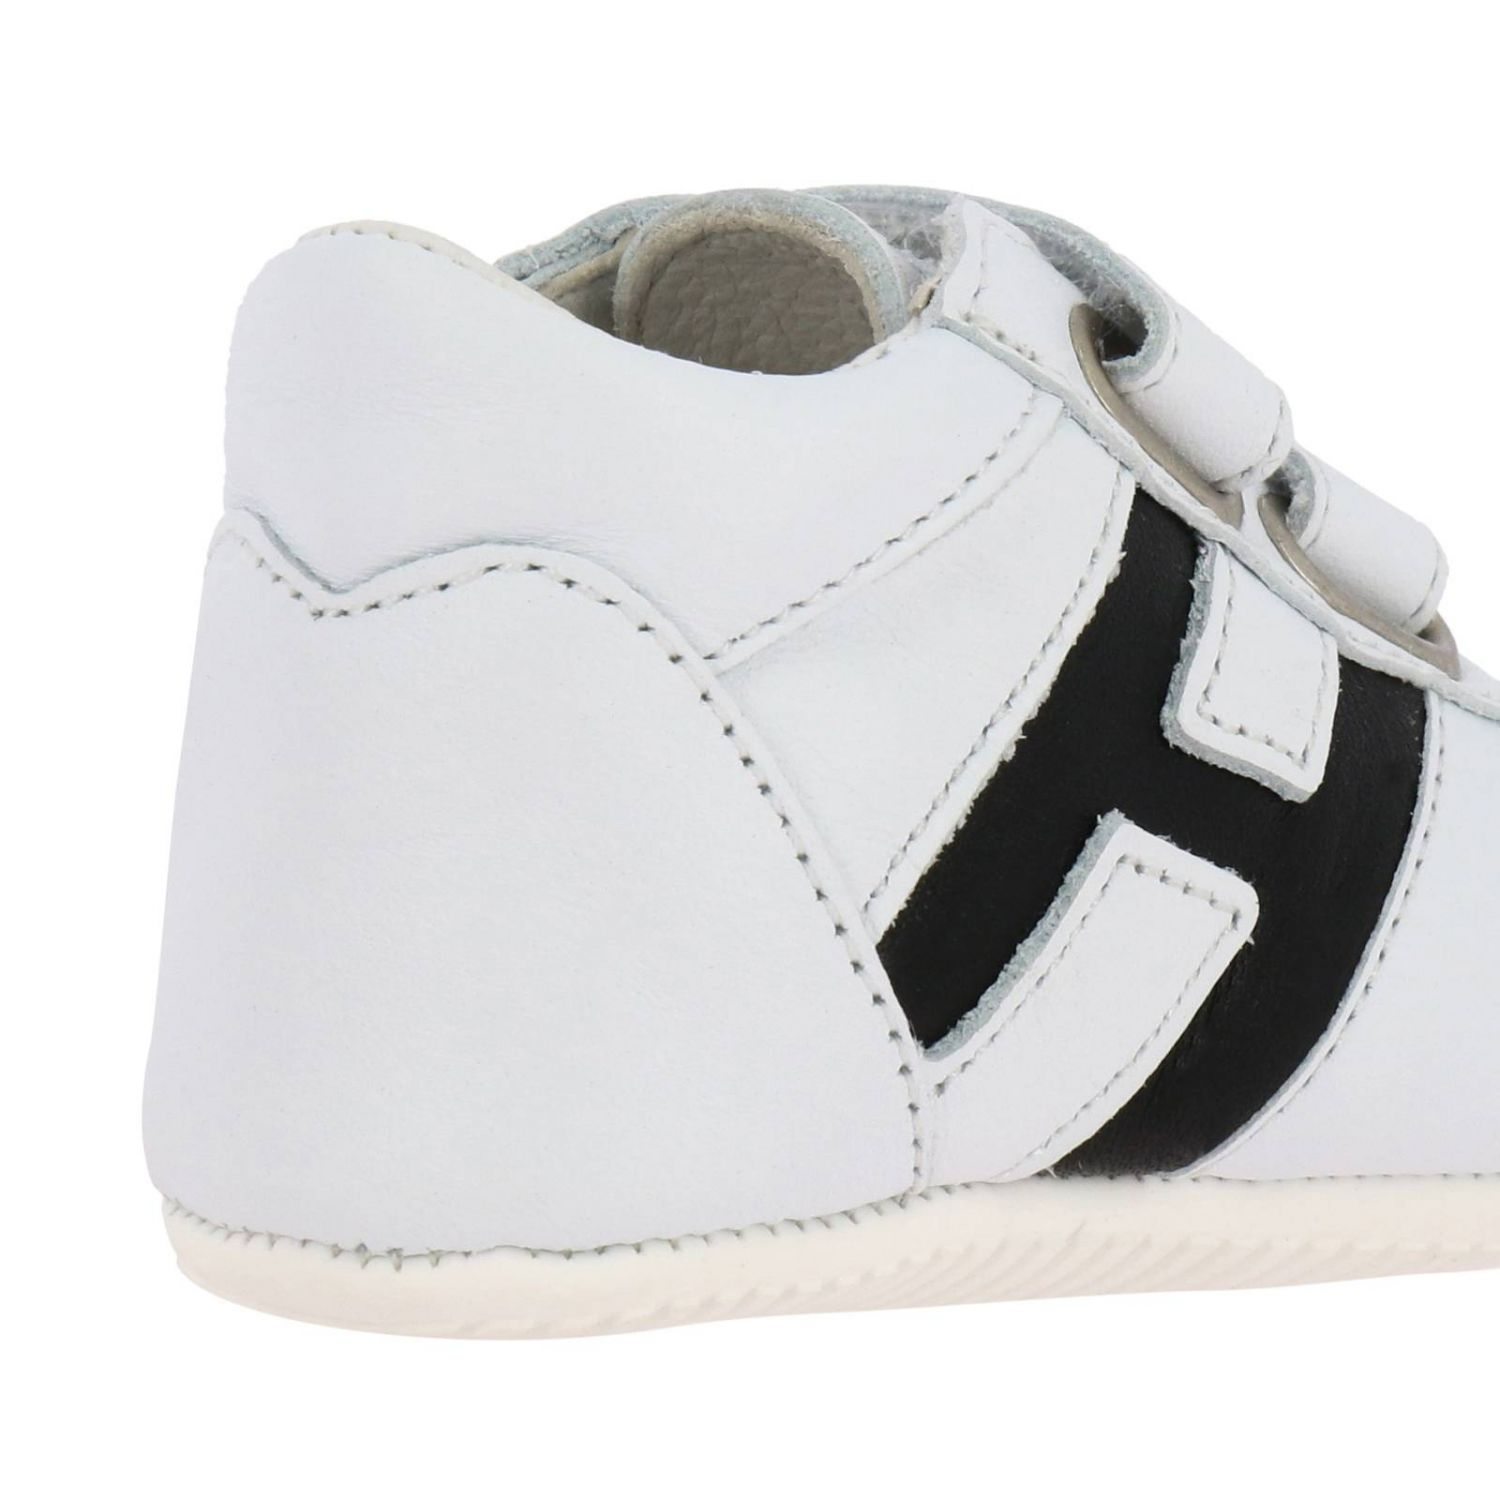 Olympia Hogan sneakers in leather with Velcro straps white 4